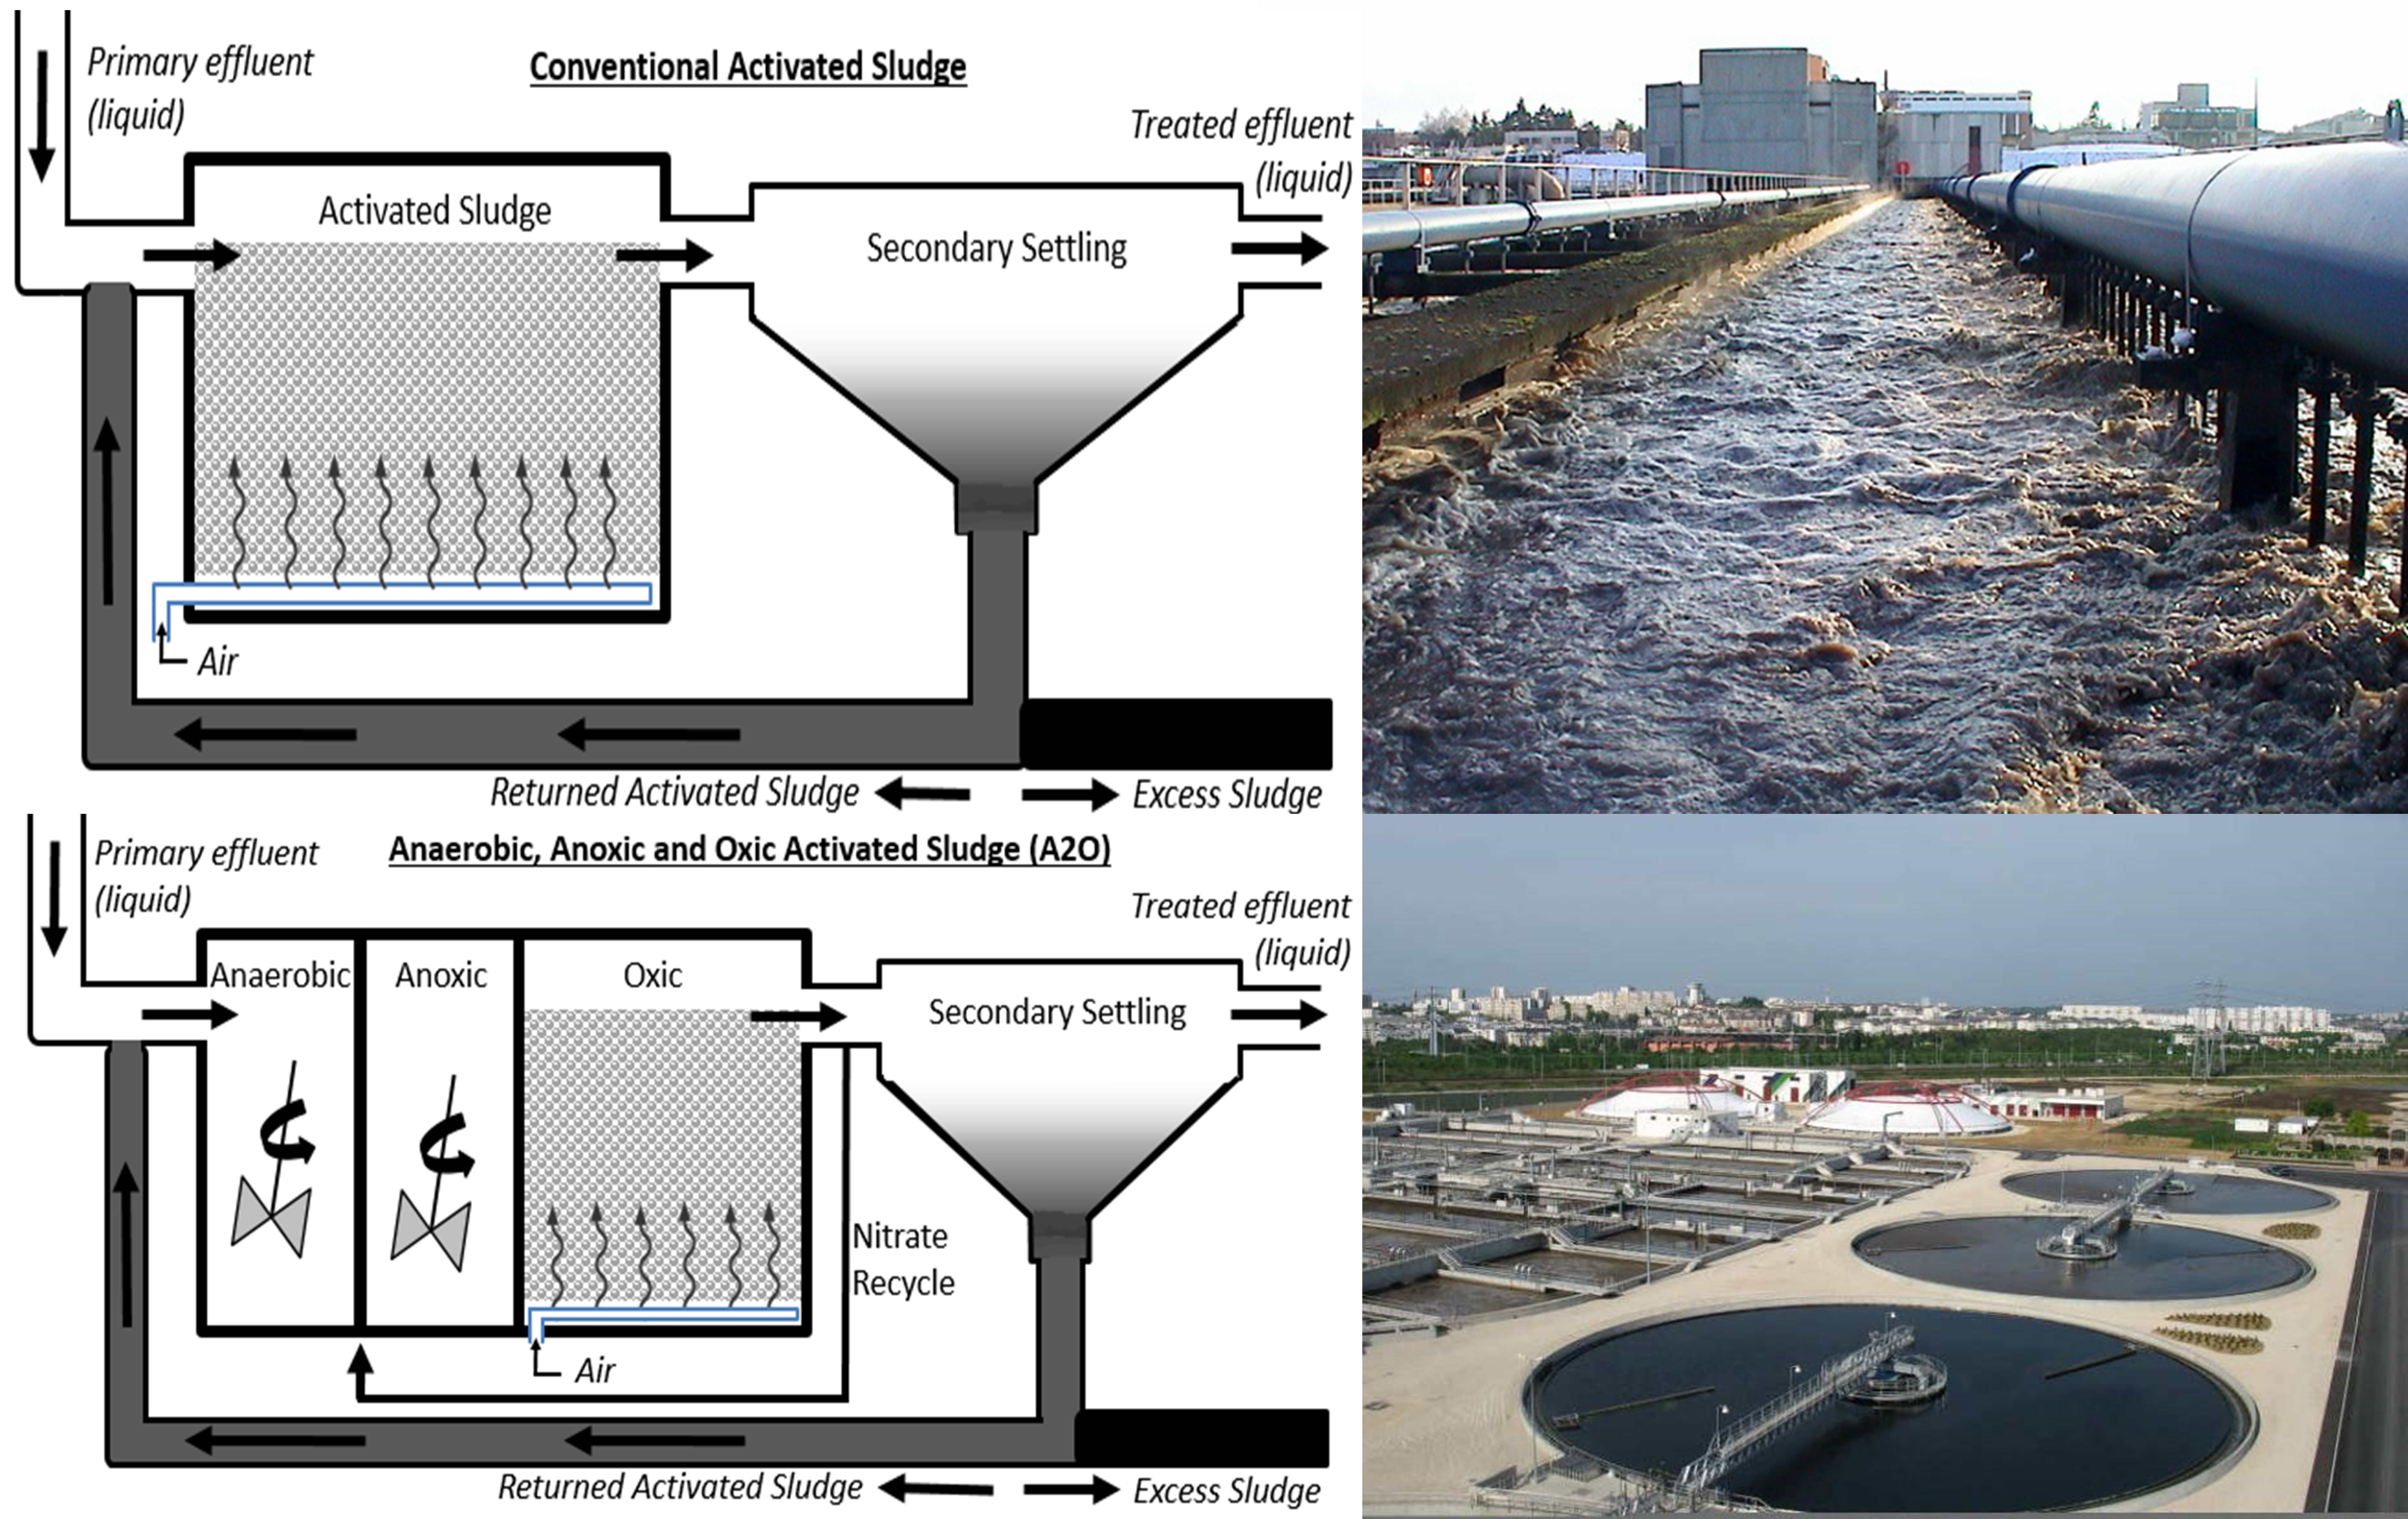 Activated Sludge Global Water Pathogen Project S Sbr Process Flow Diagram A Schematic Of An A2o System Is Included On The Bottom Left Photos Courtesy Siaapp Syndicat Interdpartemental Pour Lassainissement De Lagglomration